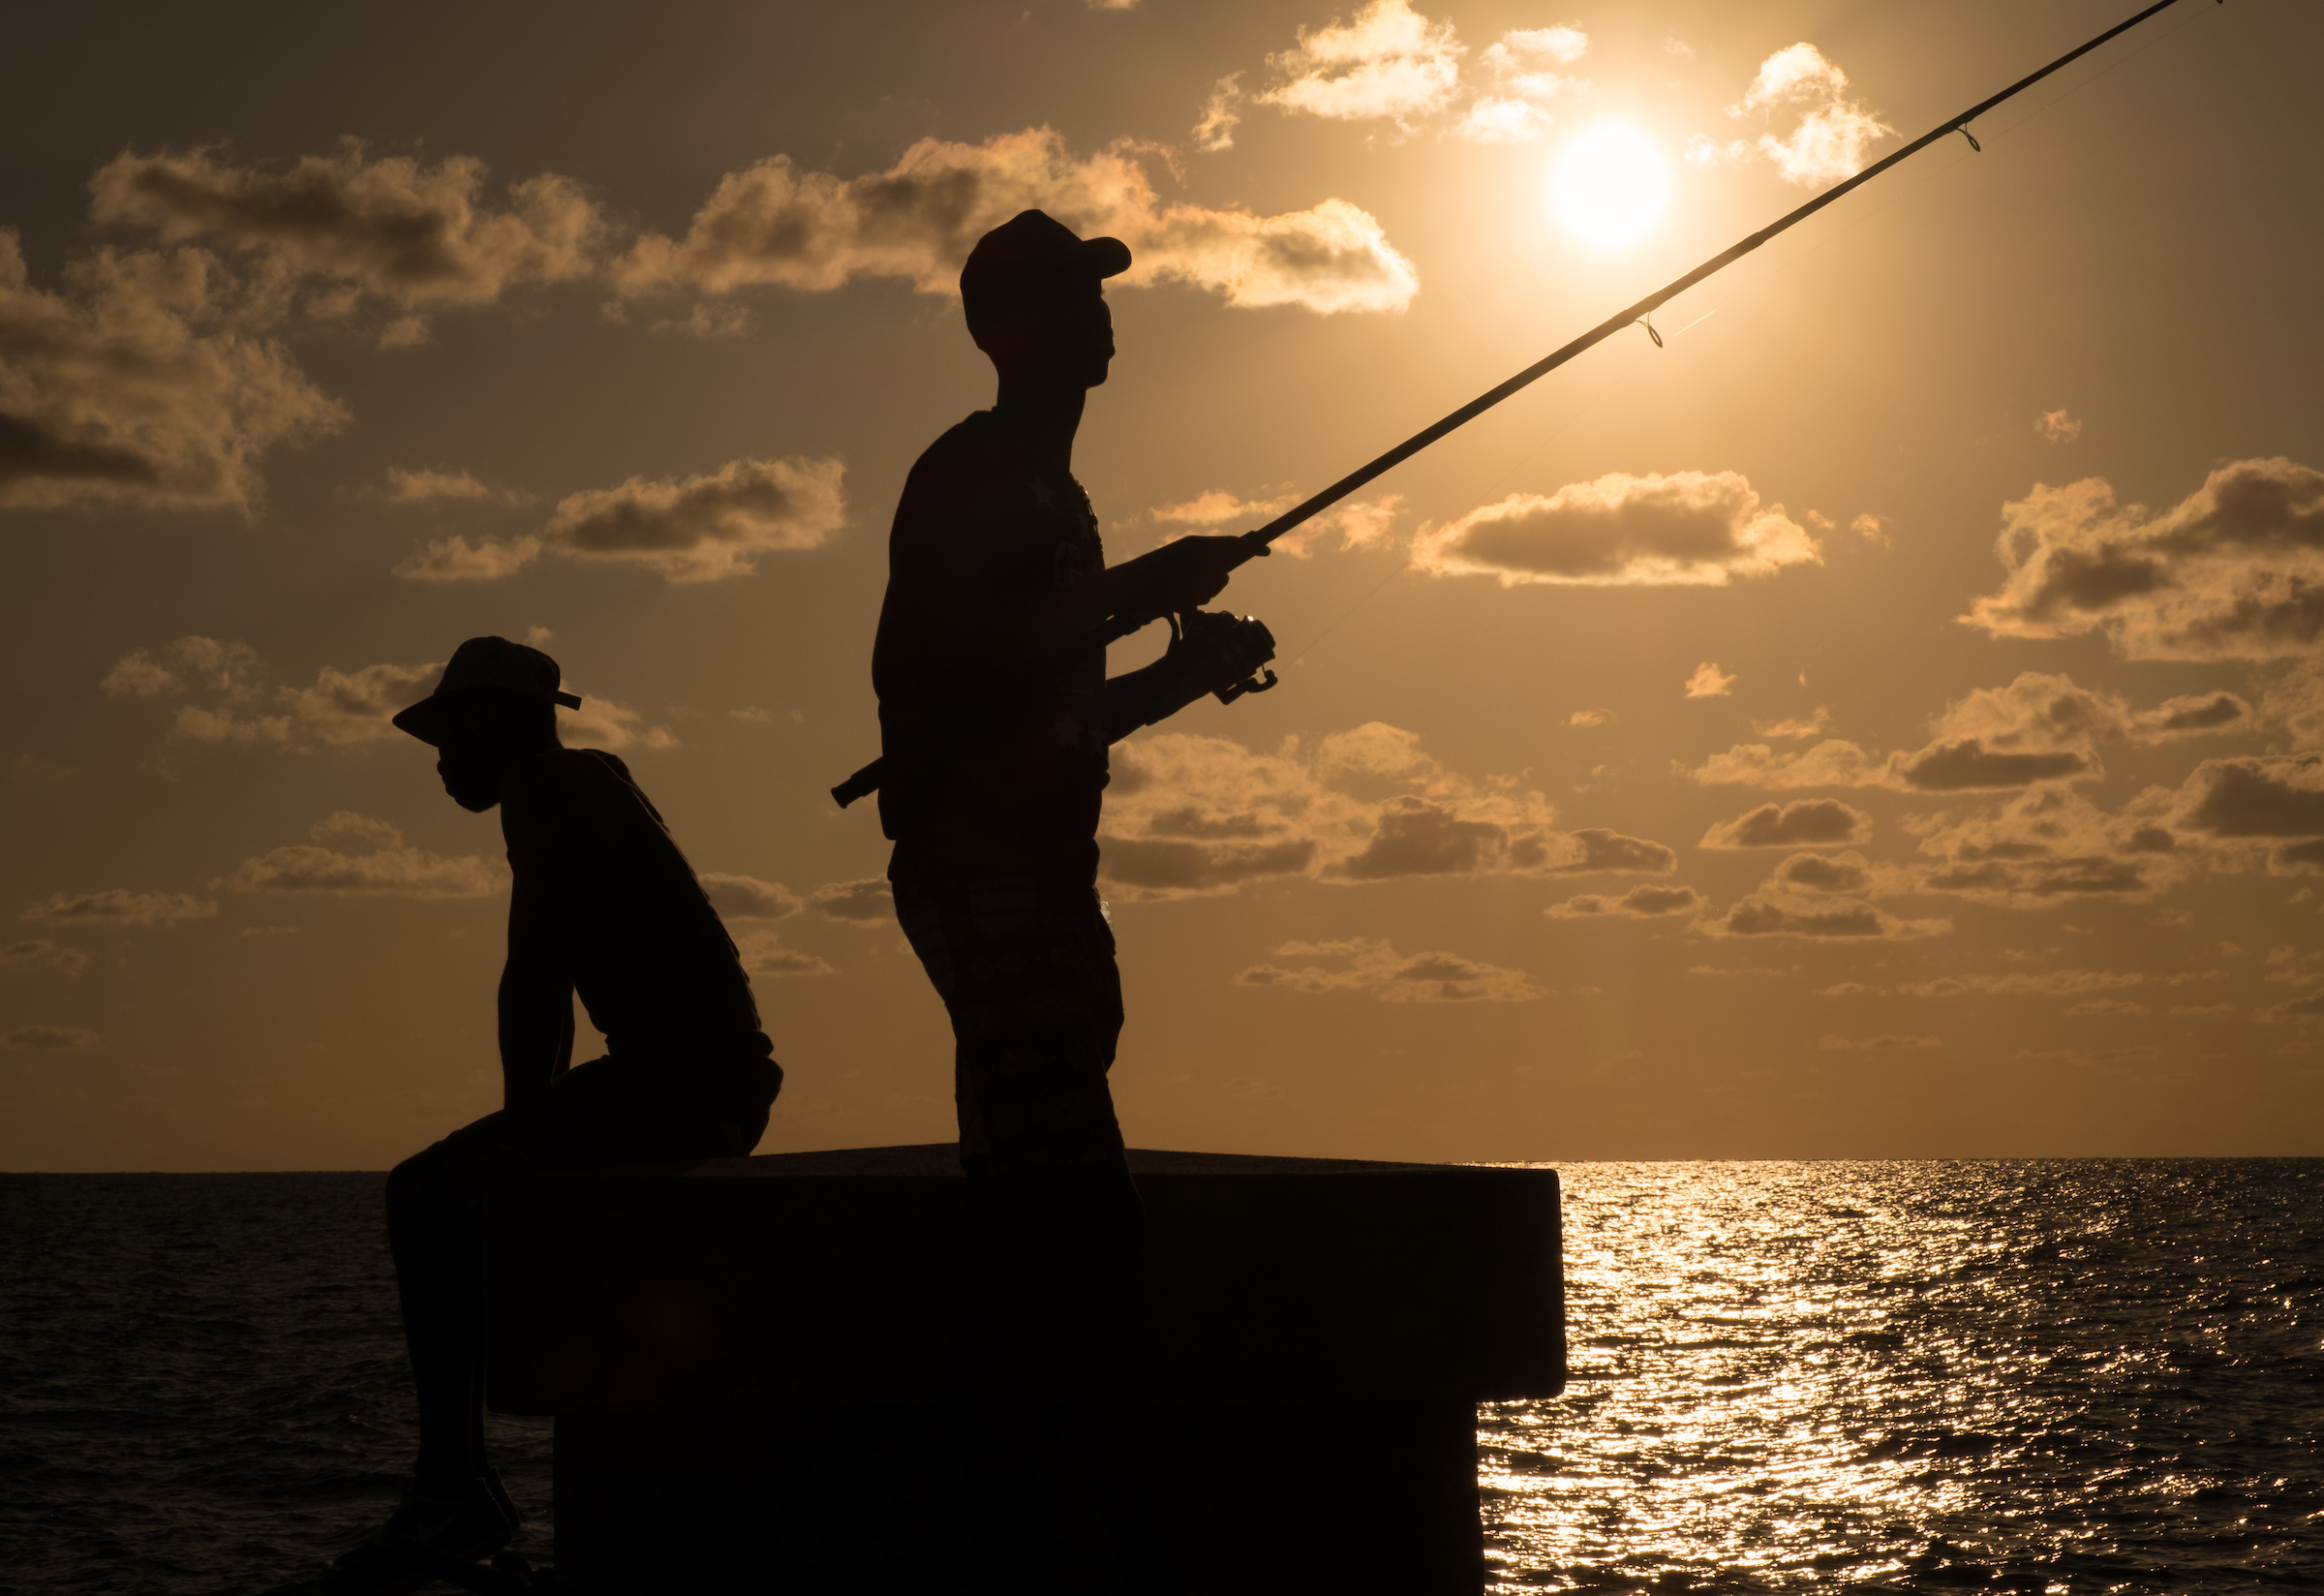 Fishing in the Malecon